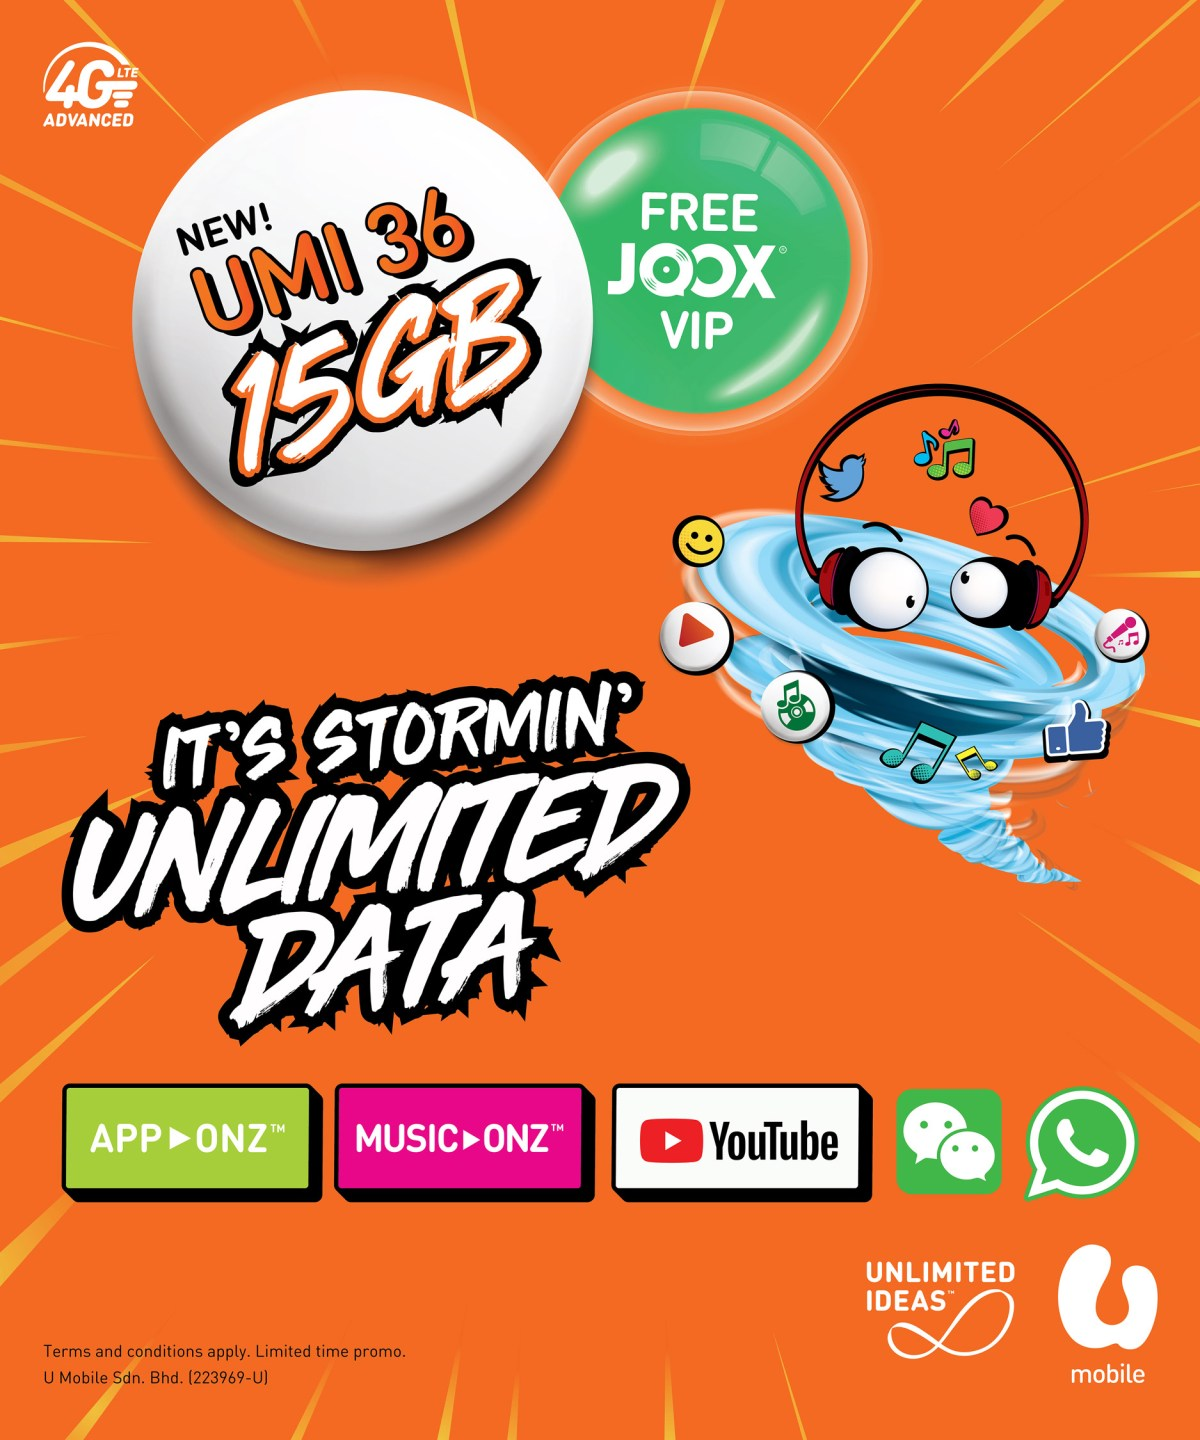 UMI 36 - It's Stormin' Unlimited Data!